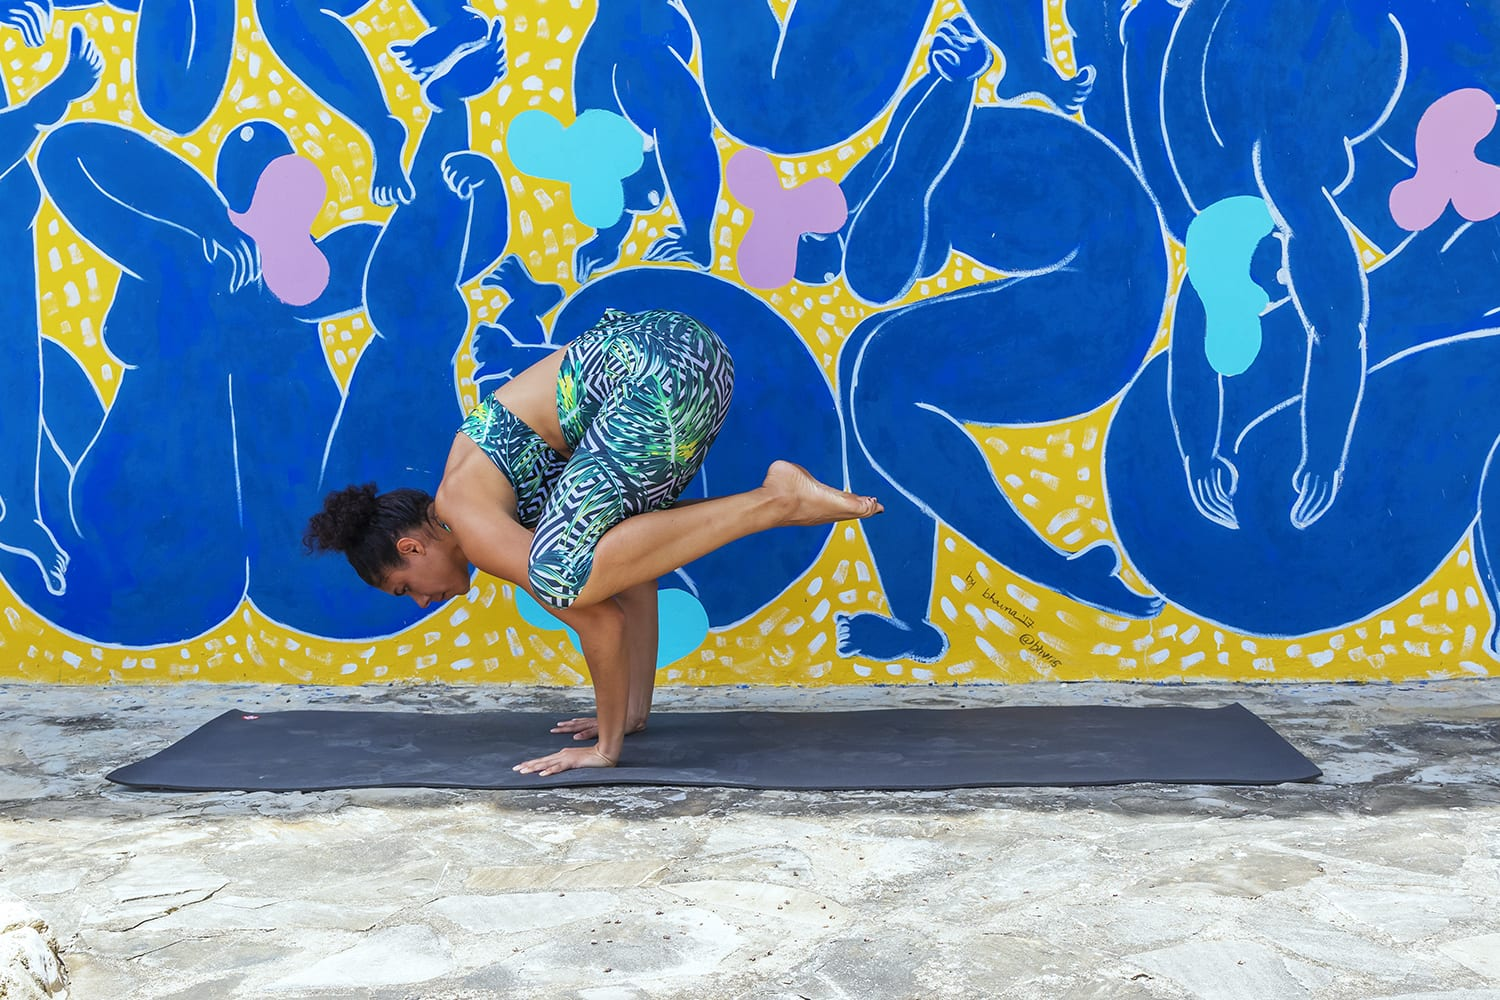 A Round-Up of our Favorite Yoga Teachers